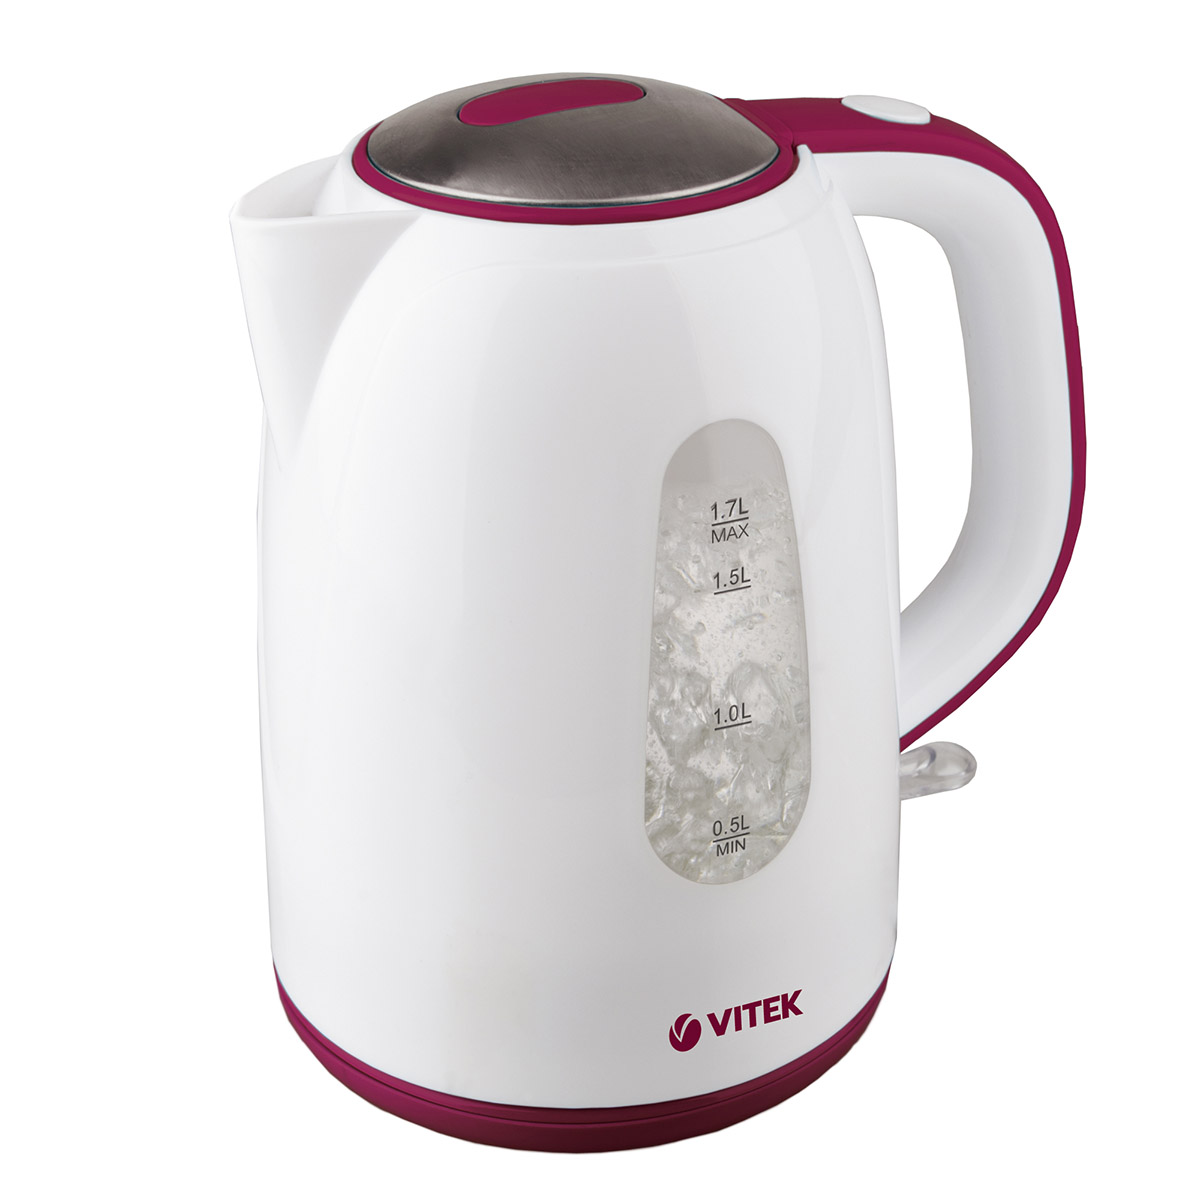 Electric kettle VITEK VT-7006 (W) (Power 2150 W, volume 1.7 l, cord storage compartment, 360 ° rotation, auto power off) electric water kettle haier hek 182 auto power off protection wired handheld instant heating electric kettle